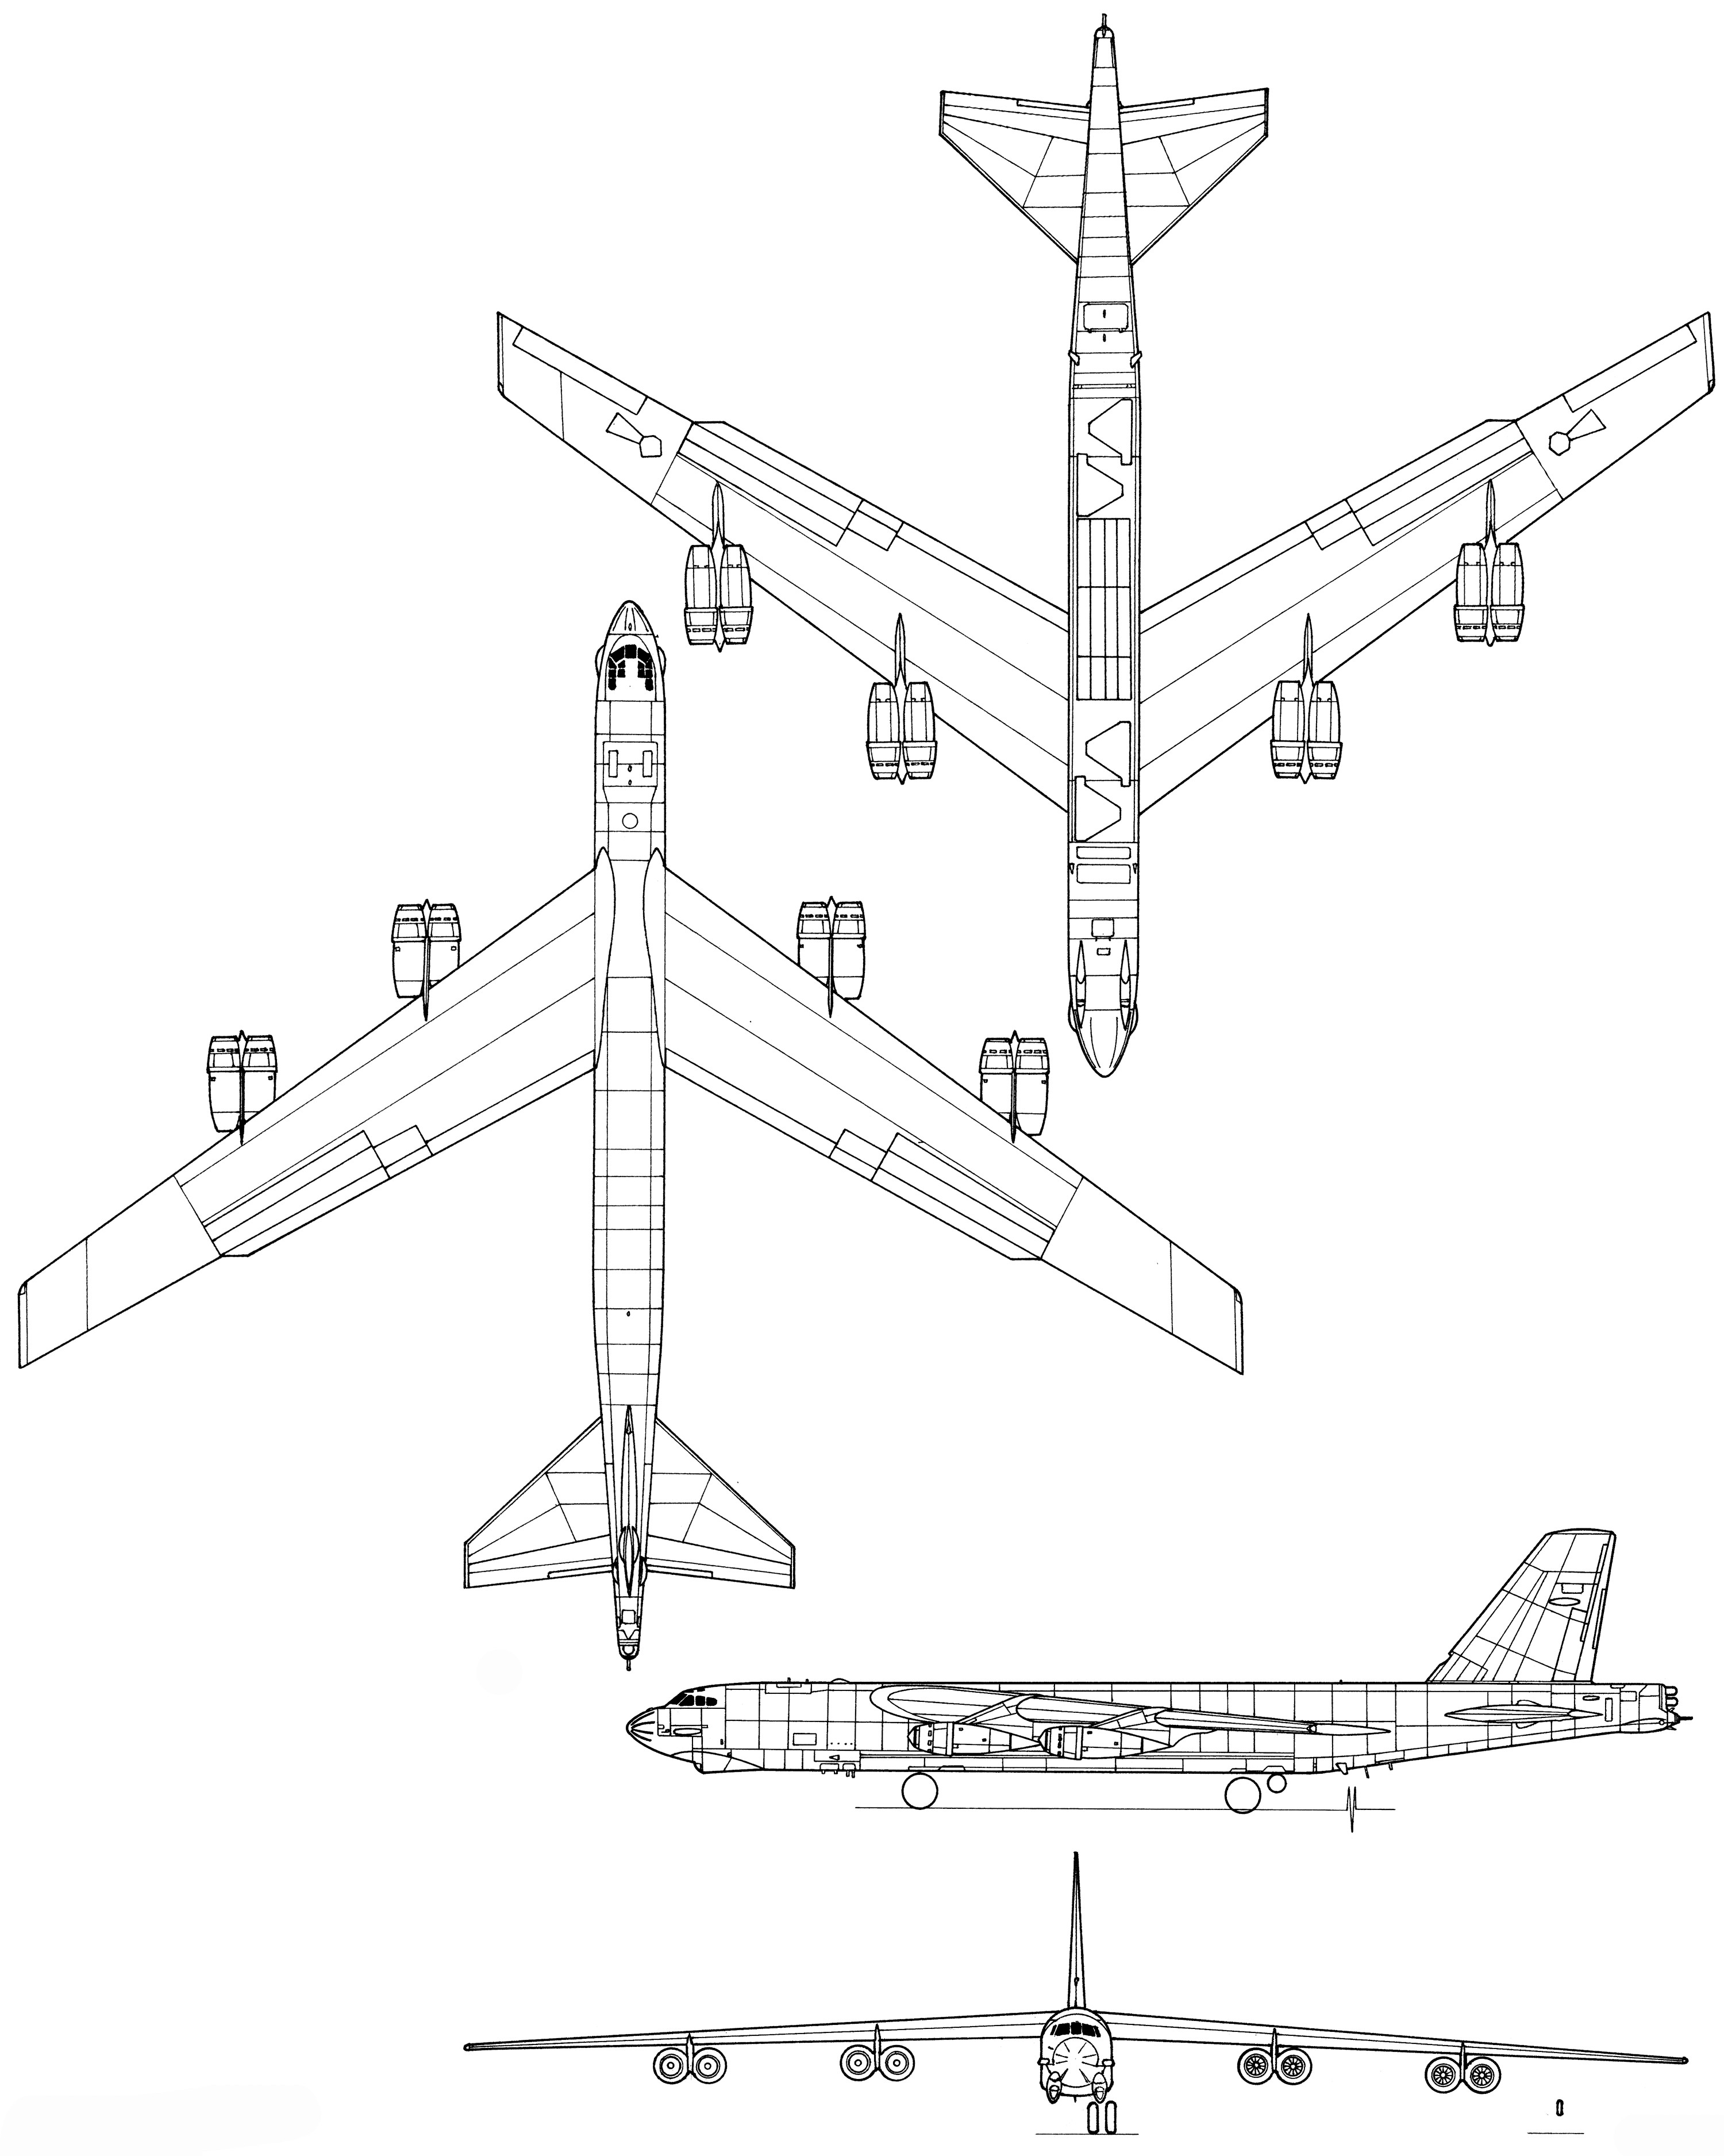 Plane Engine Diagram Boeing B 52 Stratofortress Blueprint Download Free Blueprint for Of Plane Engine Diagram